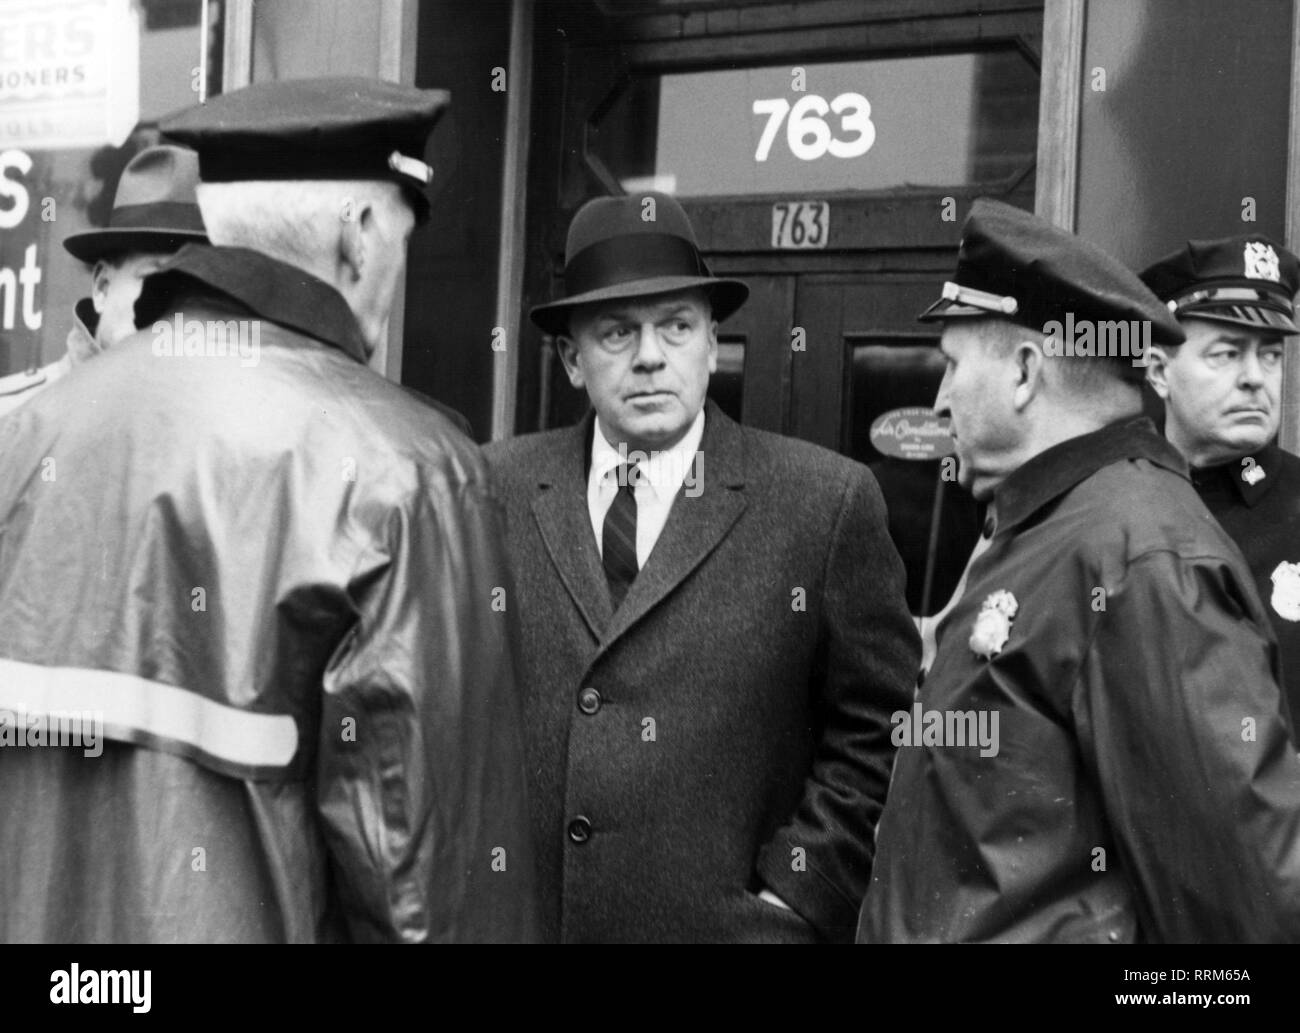 Kennedy, Stephen P., Chief Constable of New York City 1955 - 1961, half length, with policemen in front of the UN- building, preparations for expected riots, 17.2.1961, Additional-Rights-Clearance-Info-Not-Available - Stock Image